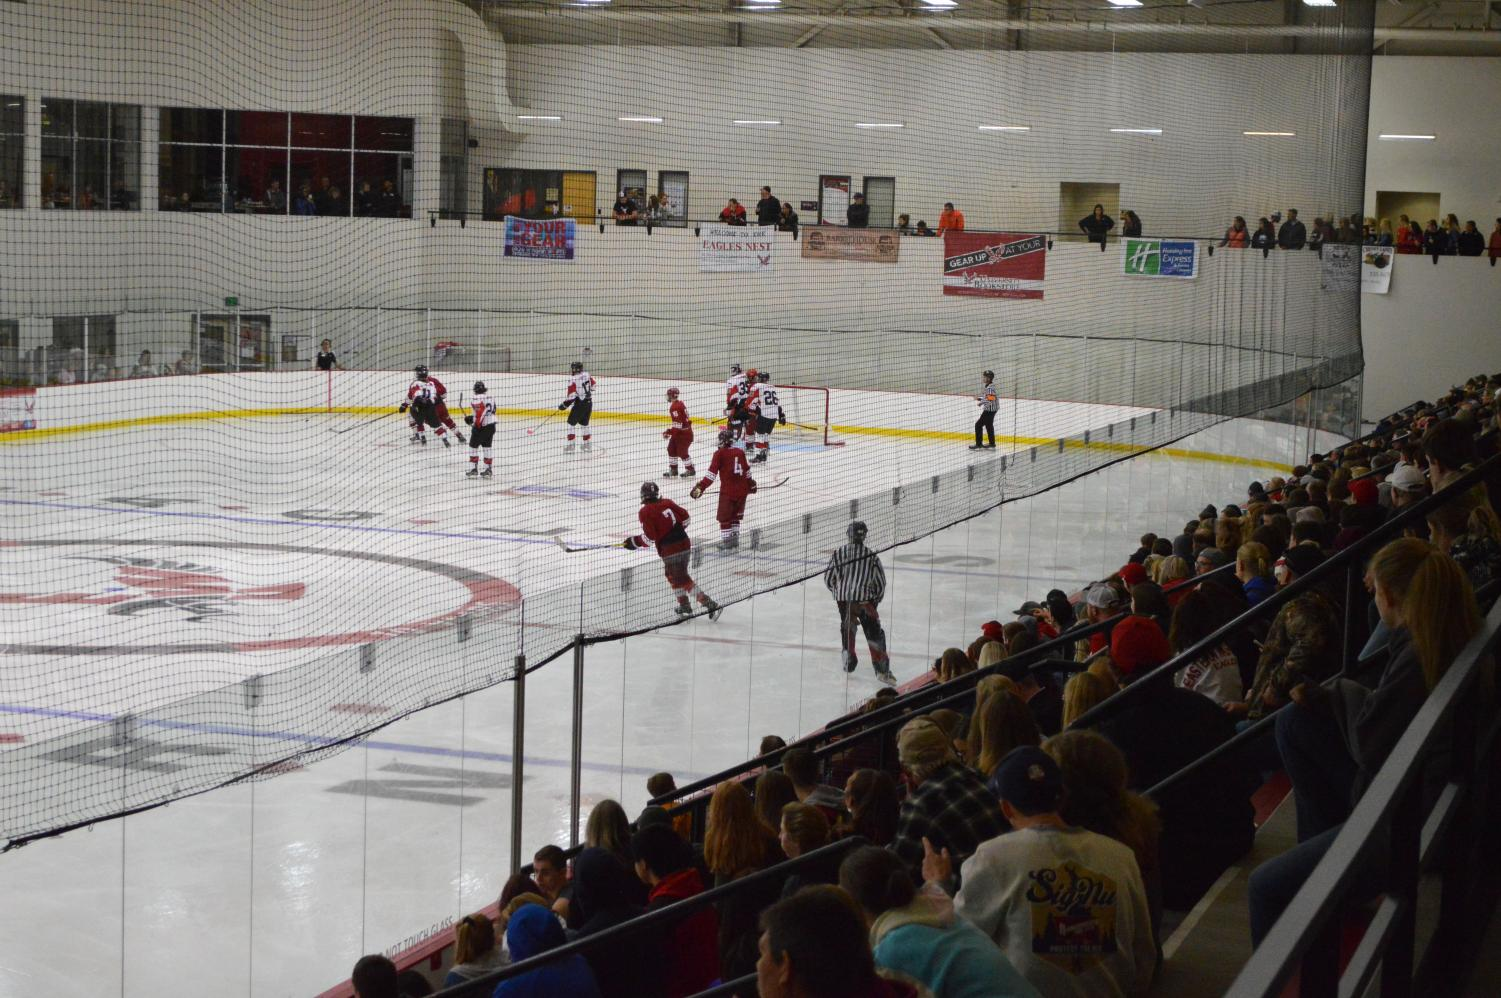 Fans look on as the Eagles take on WSU on Oct. 26. Average hockey attendance is up 199 people from last year's average of 478.